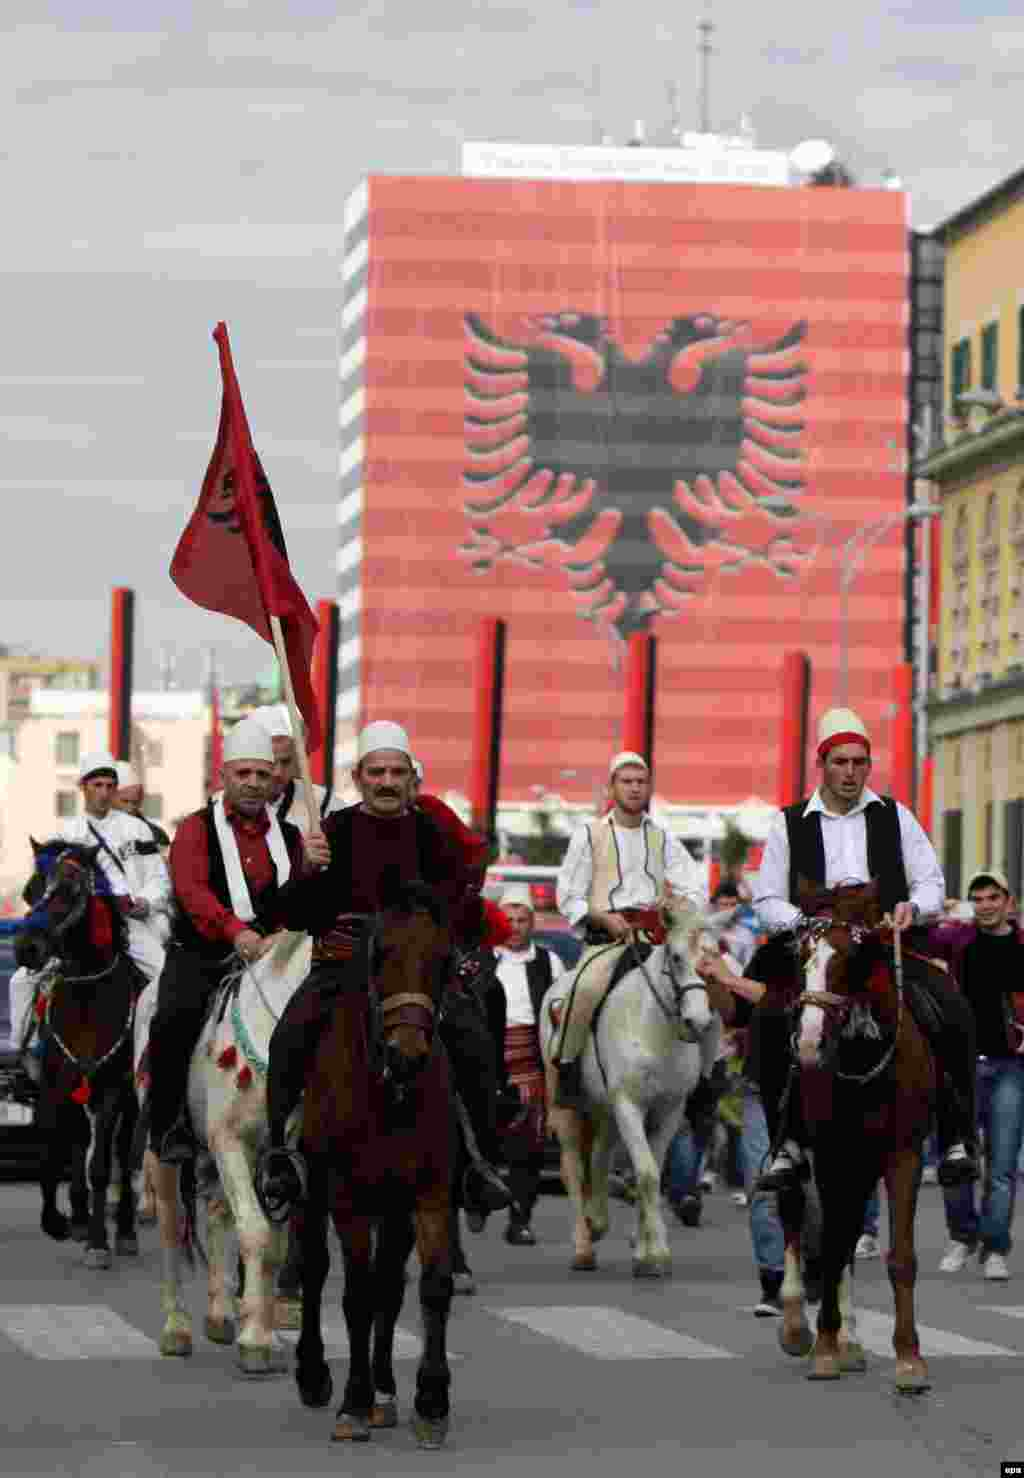 Kosovar Albanian men wear traditional attire as they ride through Tirana.